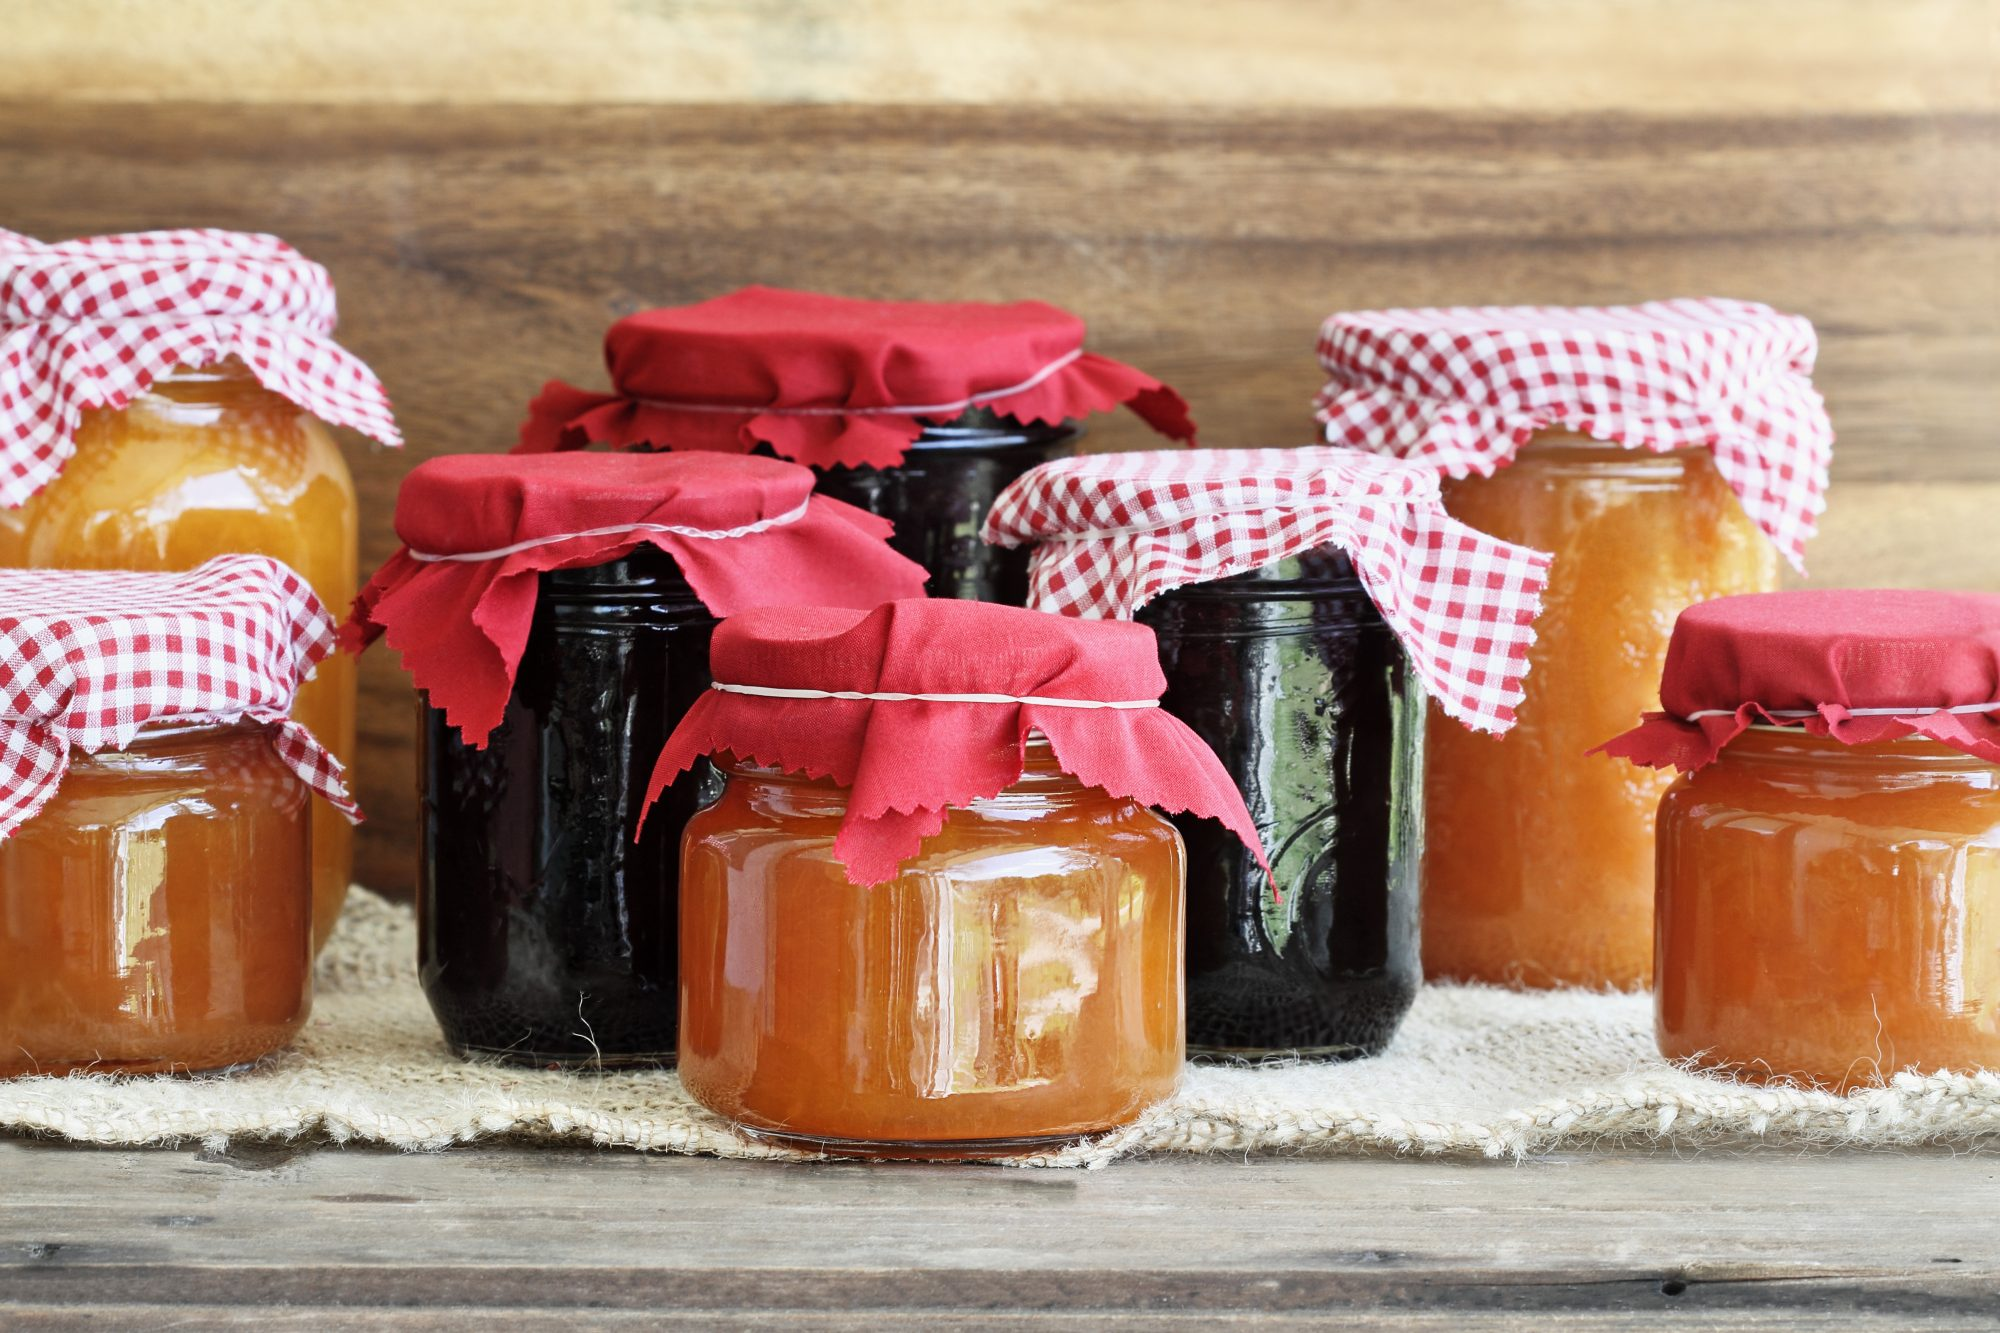 Mason jars filled with jams